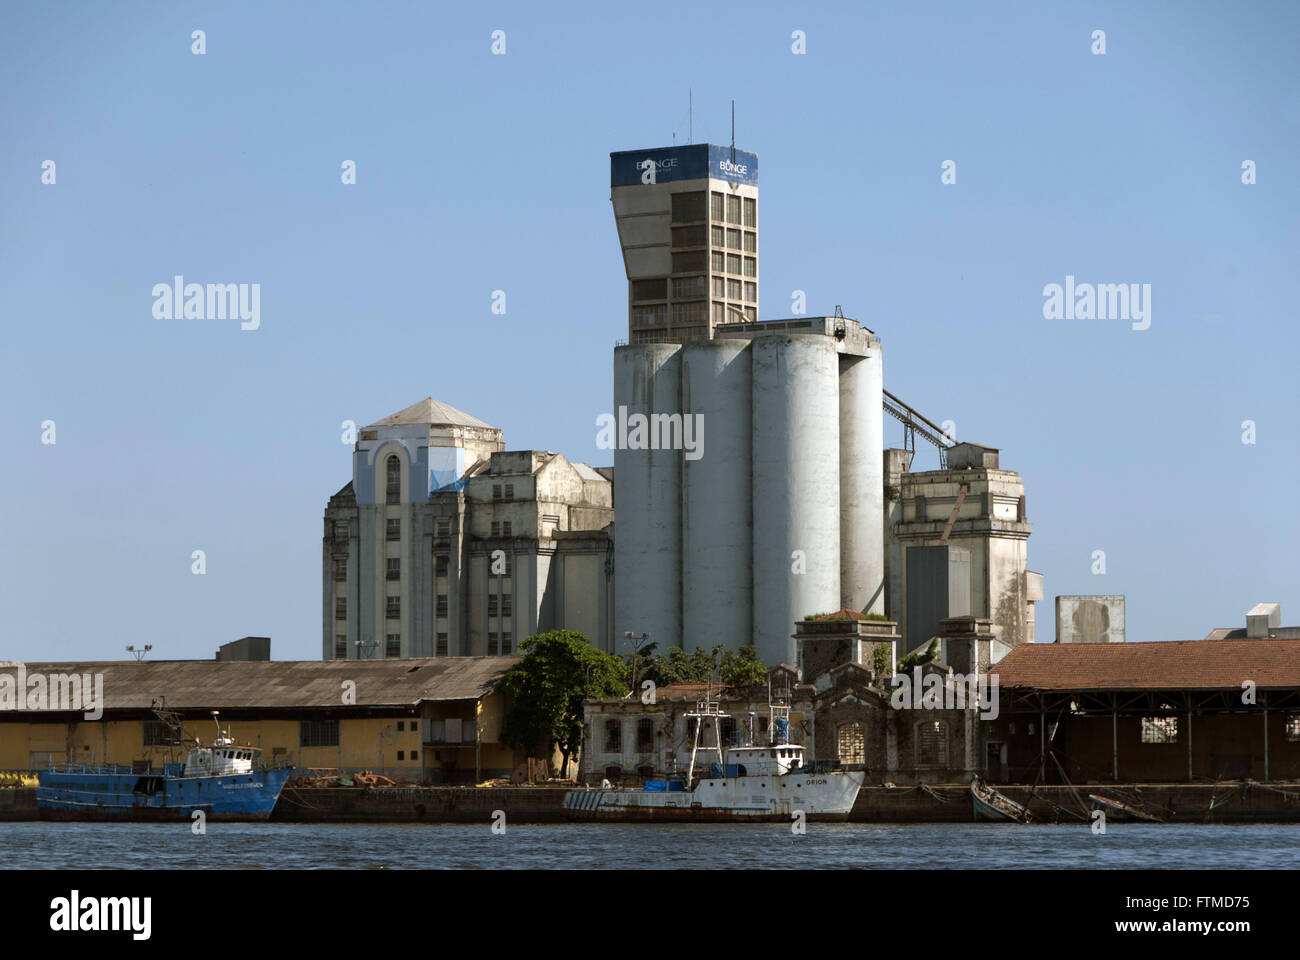 Warehouses and storage silos Bunge in storage 8 - Stock Image